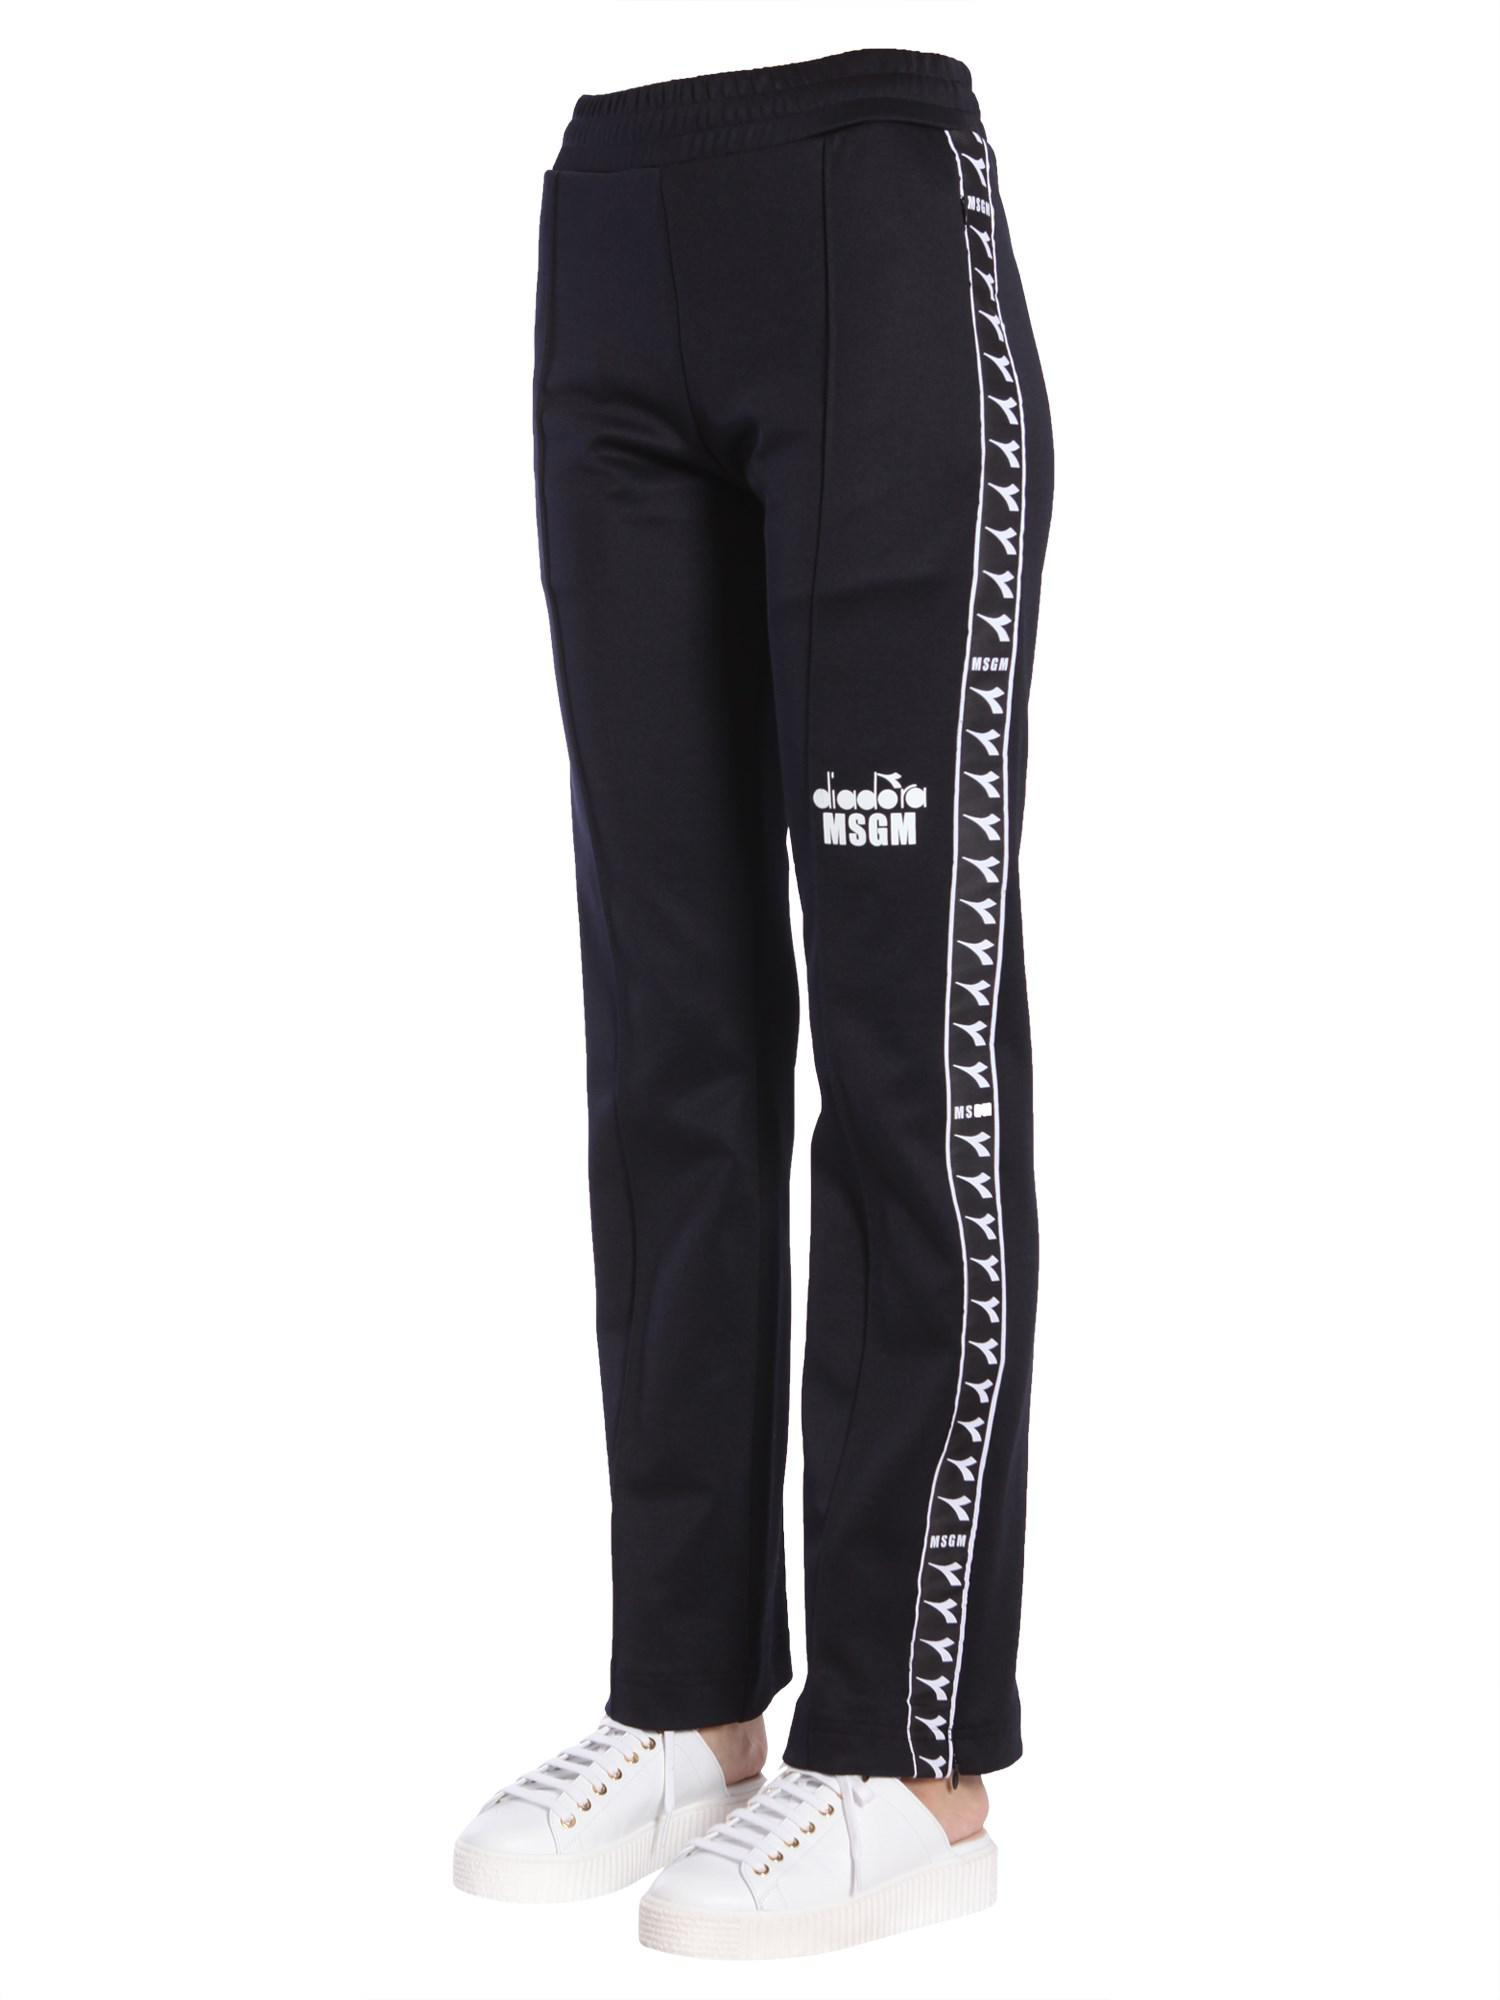 Black logo band trouser Msgm ptb4J